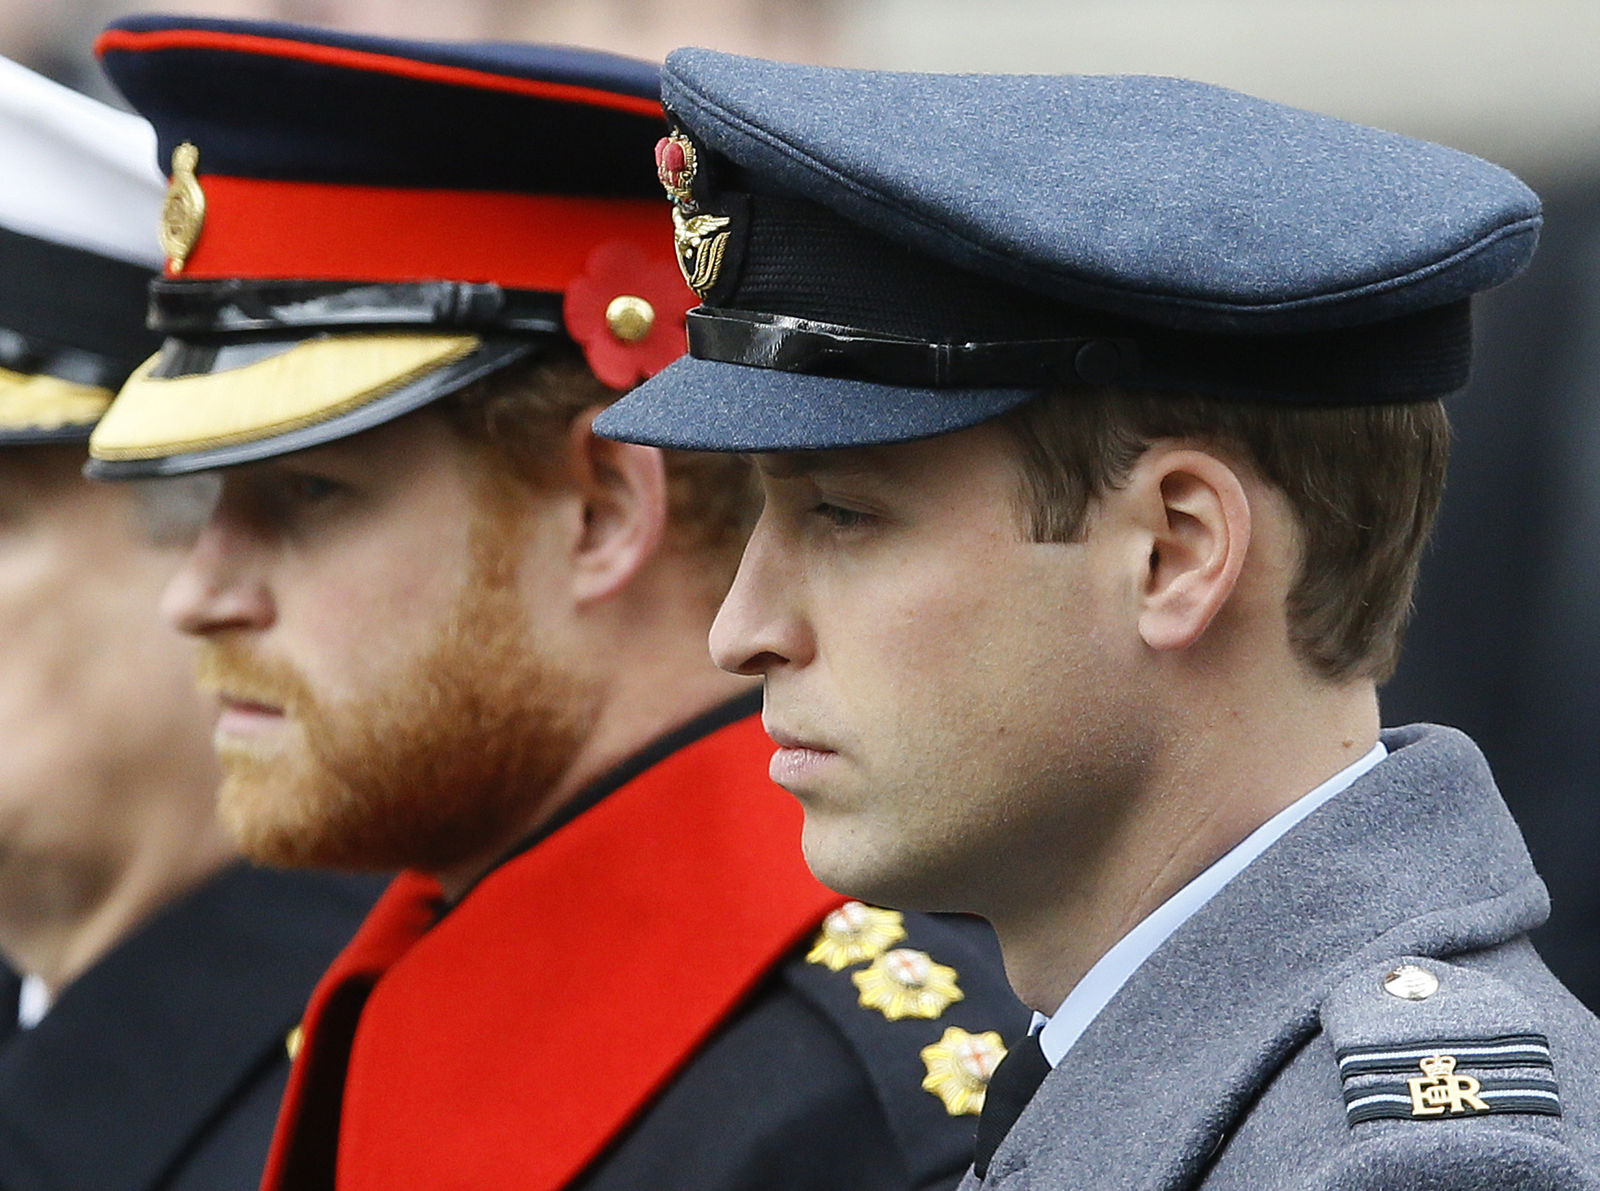 FILE - In this file photo dated Sunday, Nov. 8, 2015, Britain's Prince William, right, Prince Harry, left, attend the Remembrance Sunday ceremony at the Cenotaph in London. Britain's Queen Elizabeth II is set to hold face-to-face talks Monday, Jan. 13, 2020 with Prince Harry for the first time since he and his wife, Meghan, unveiled their controversial plan to walk away from royal roles — at a dramatic family summit meant to chart a future course for the couple. The meeting at the monarch's private Sandringham estate in eastern England will also include Harry's father Prince Charles and his brother Prince William.  (AP Photo/Kirsty Wigglesworth, File)